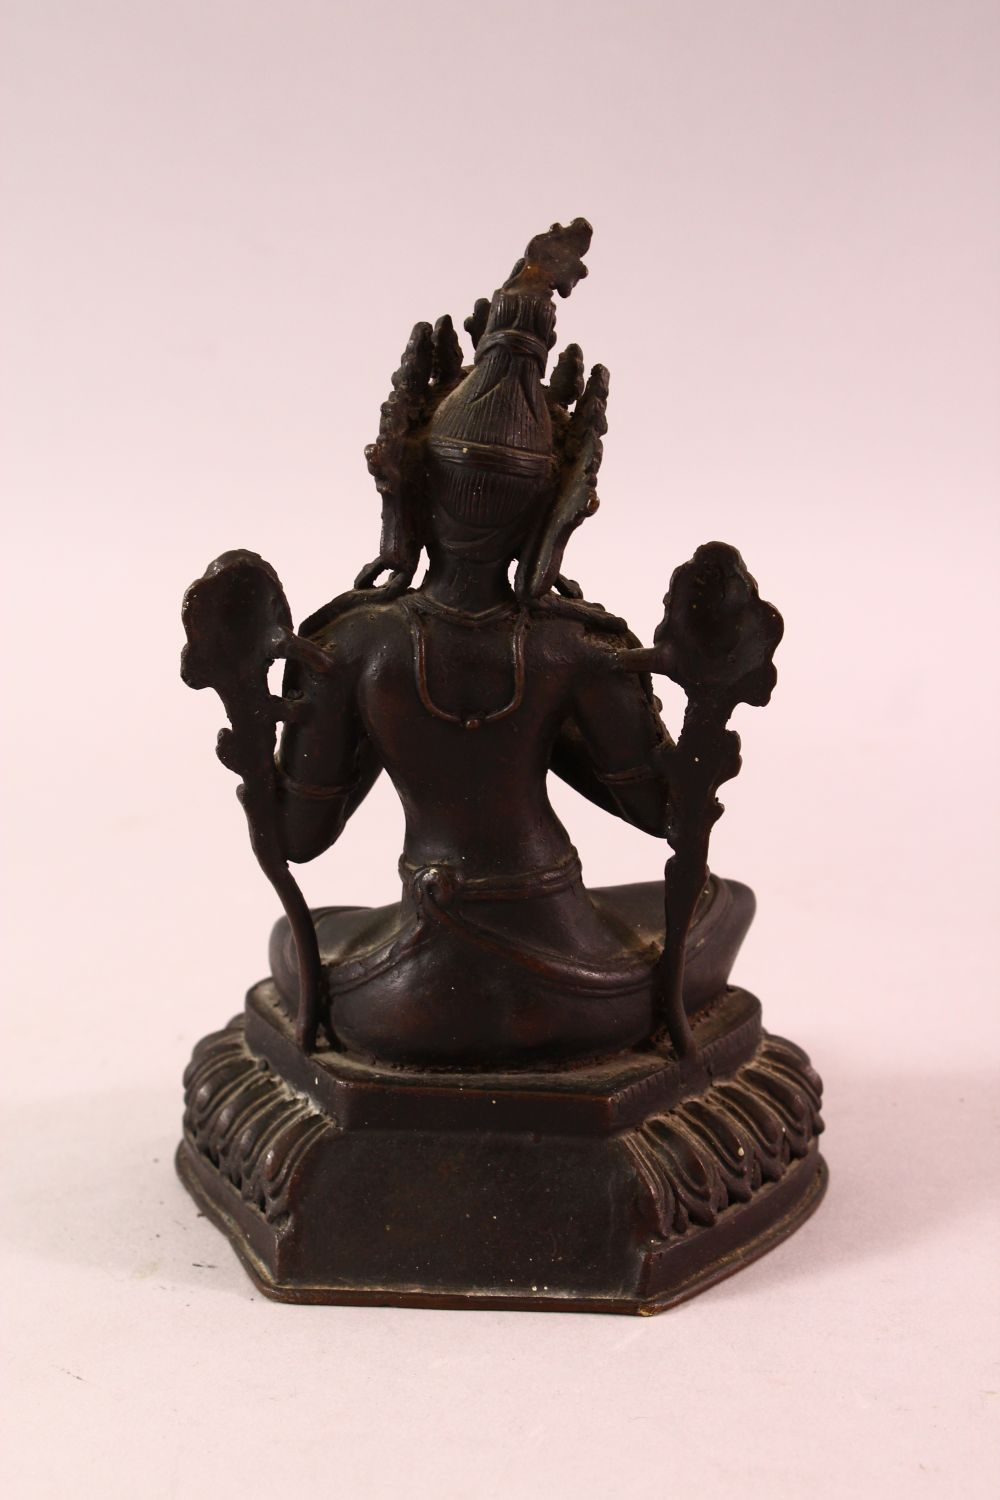 A 19TH CENTURY INDIAN BRONZE FIGURE OF SHIVA / DEITY, in a seated pose with hands together, upon - Image 3 of 5